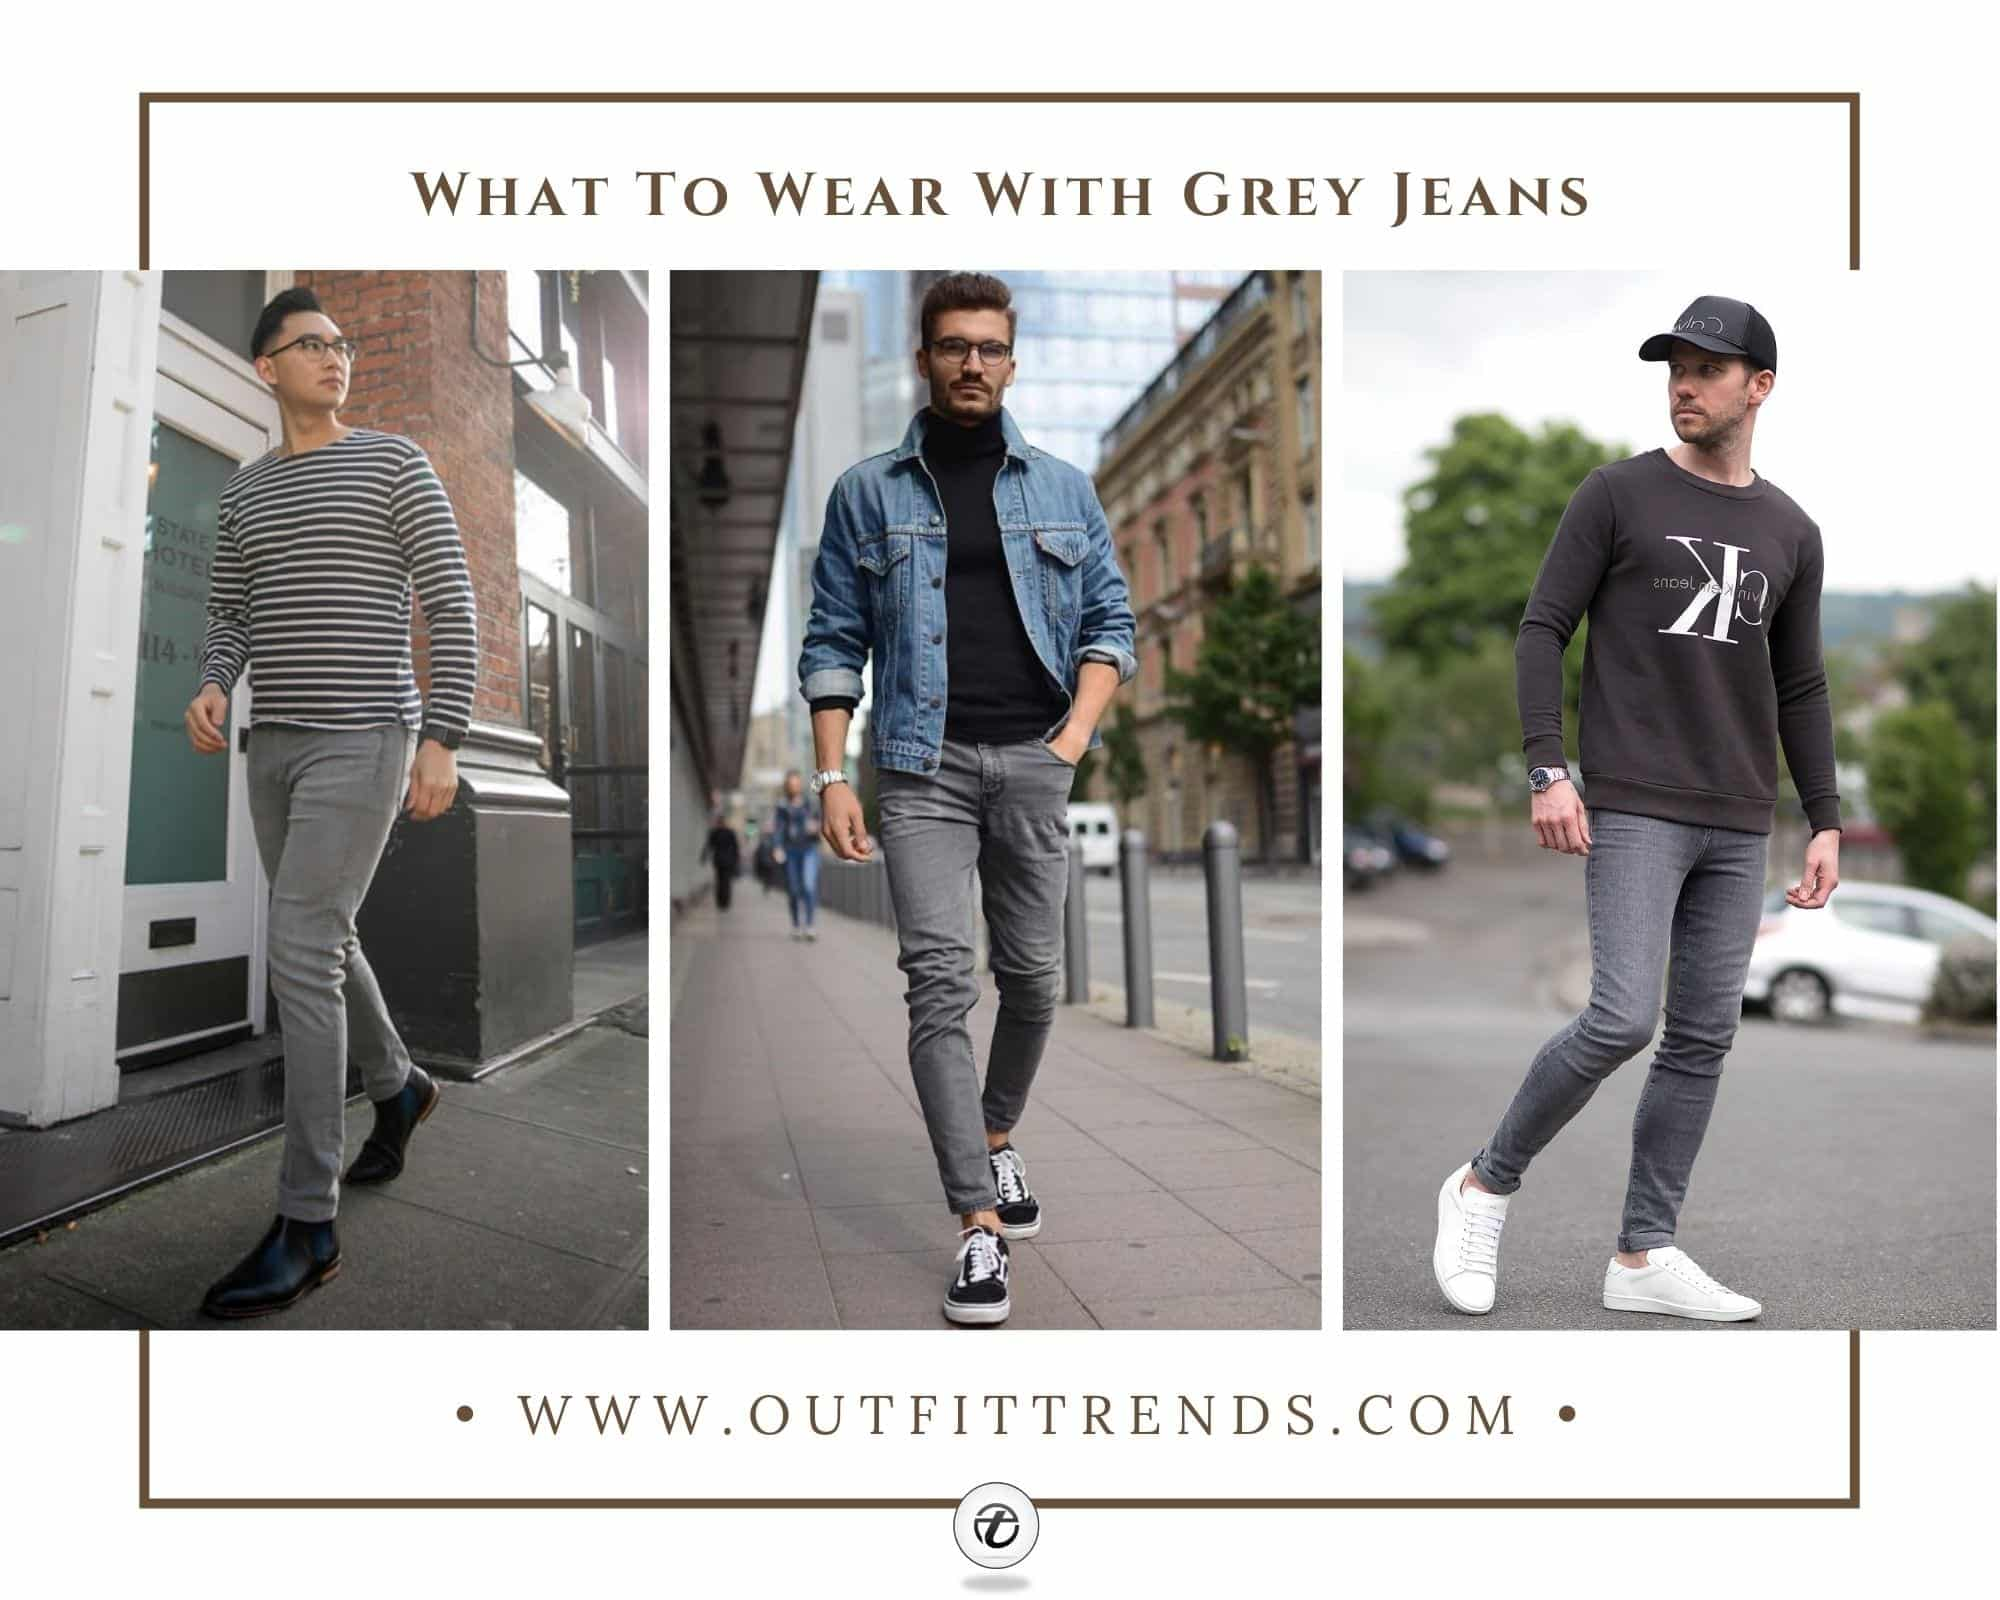 How To Wear Grey Jeans – 20 Outfits With Grey Jeans for Men